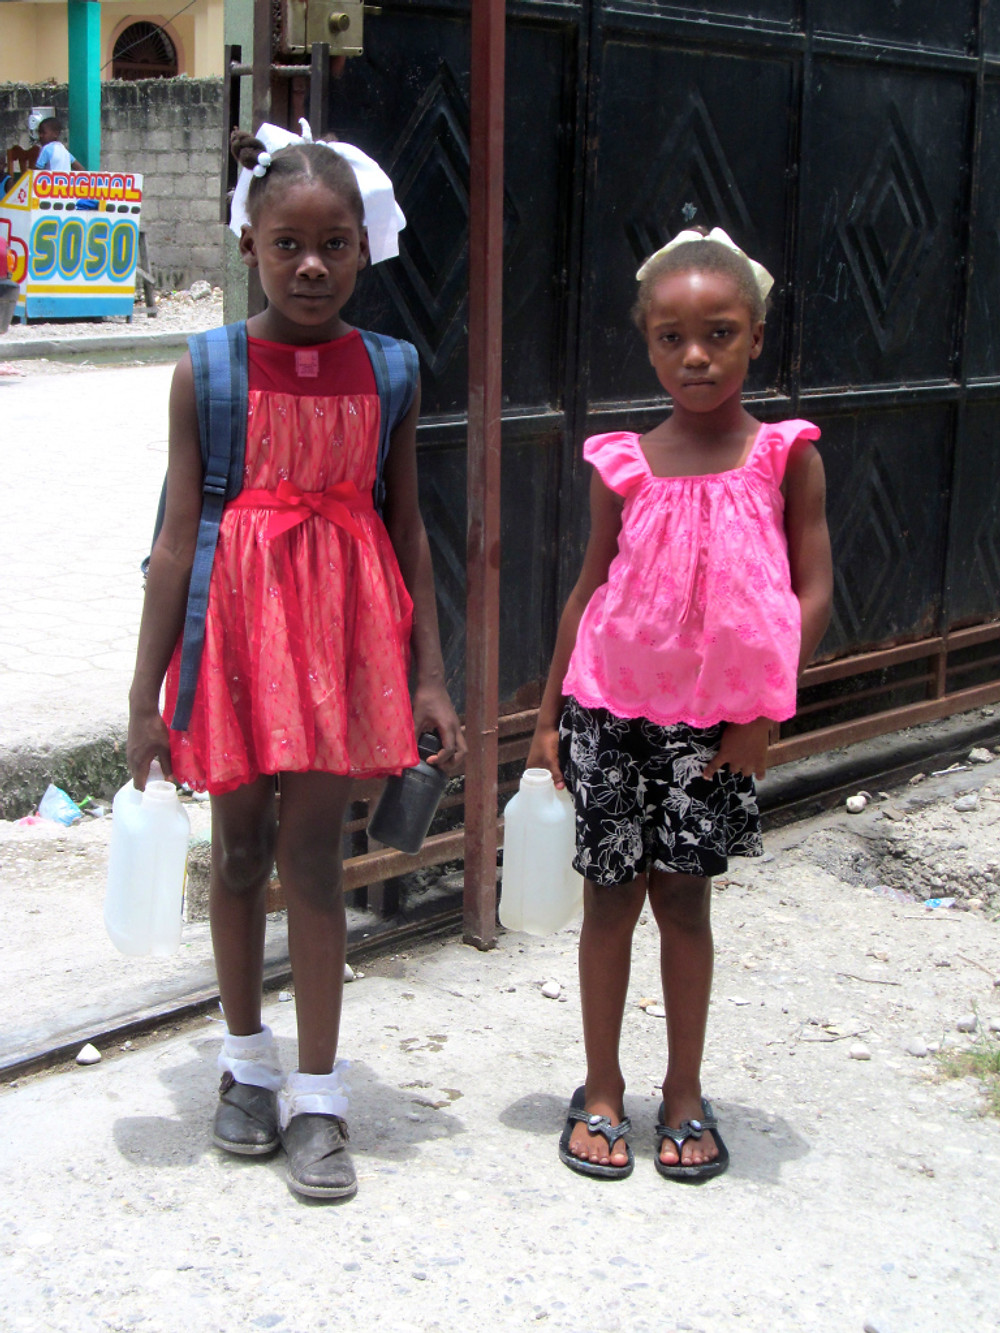 Little girls carrying small jugs to the community water spigot!